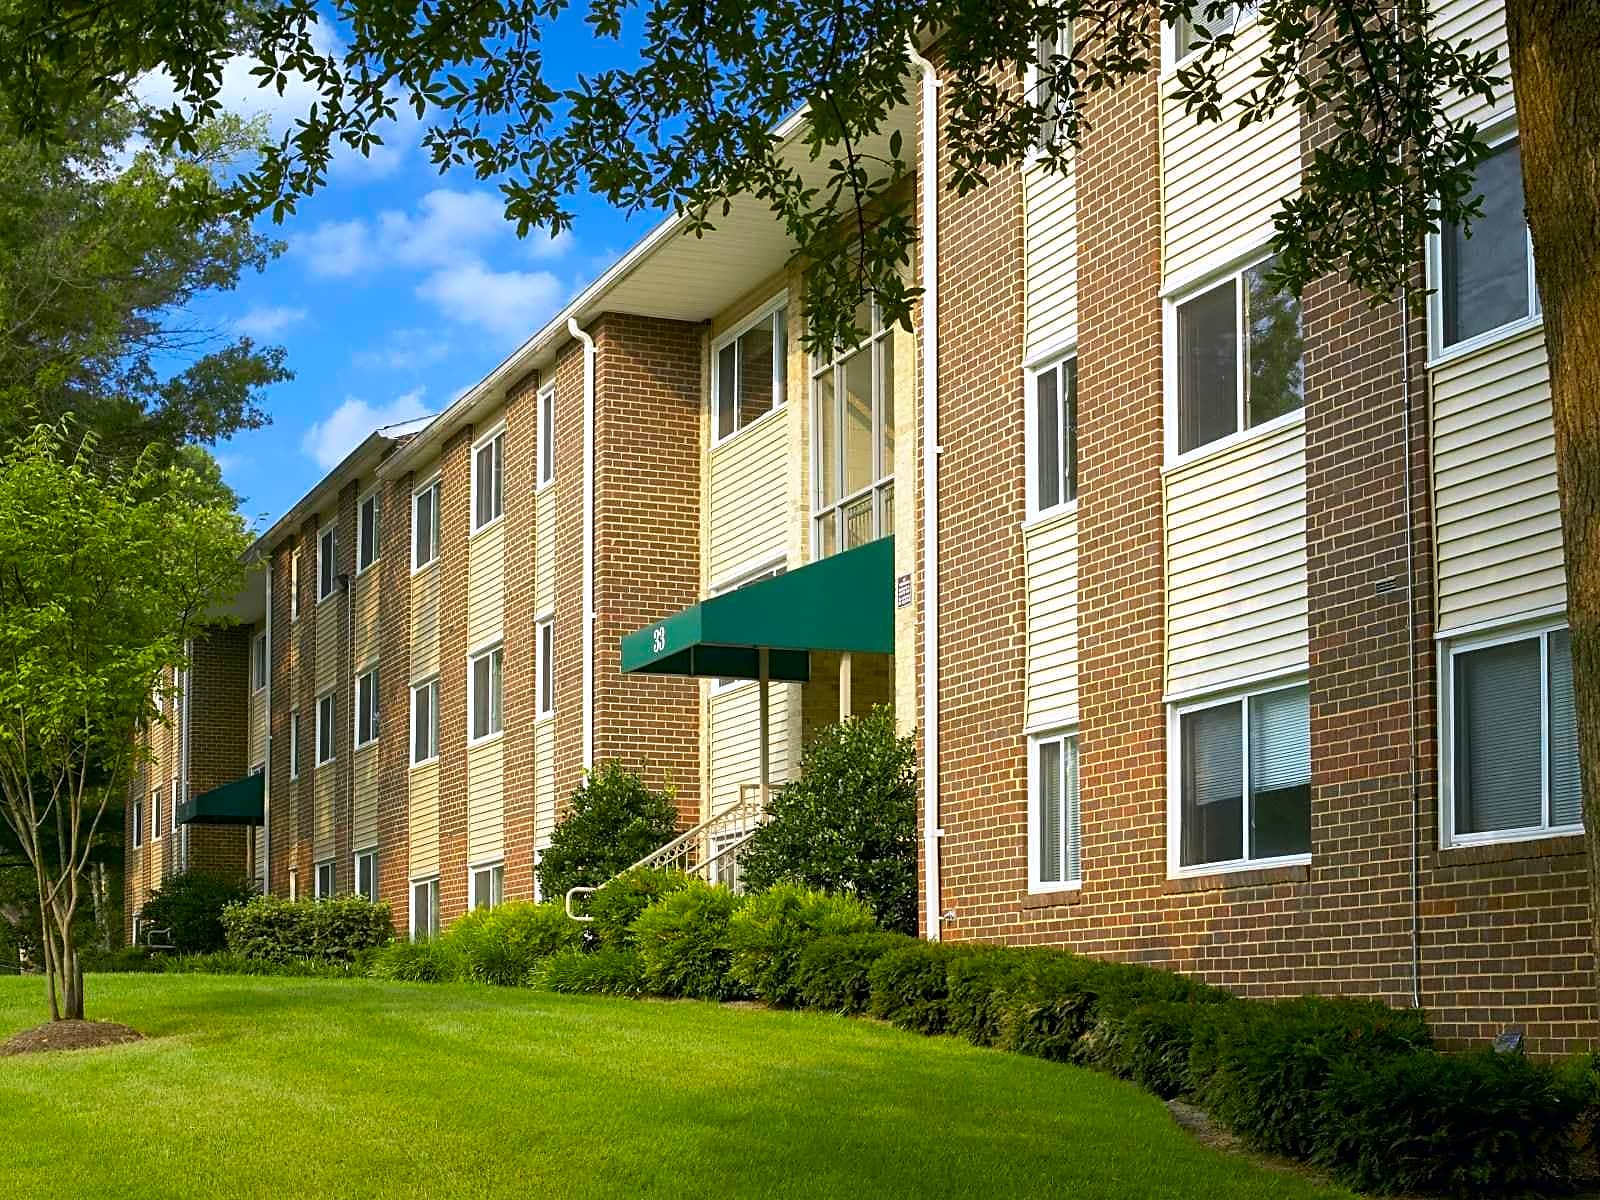 Photo: Gaithersburg Apartment for Rent - $1065.00 / month; 1 Bd & 1 Ba